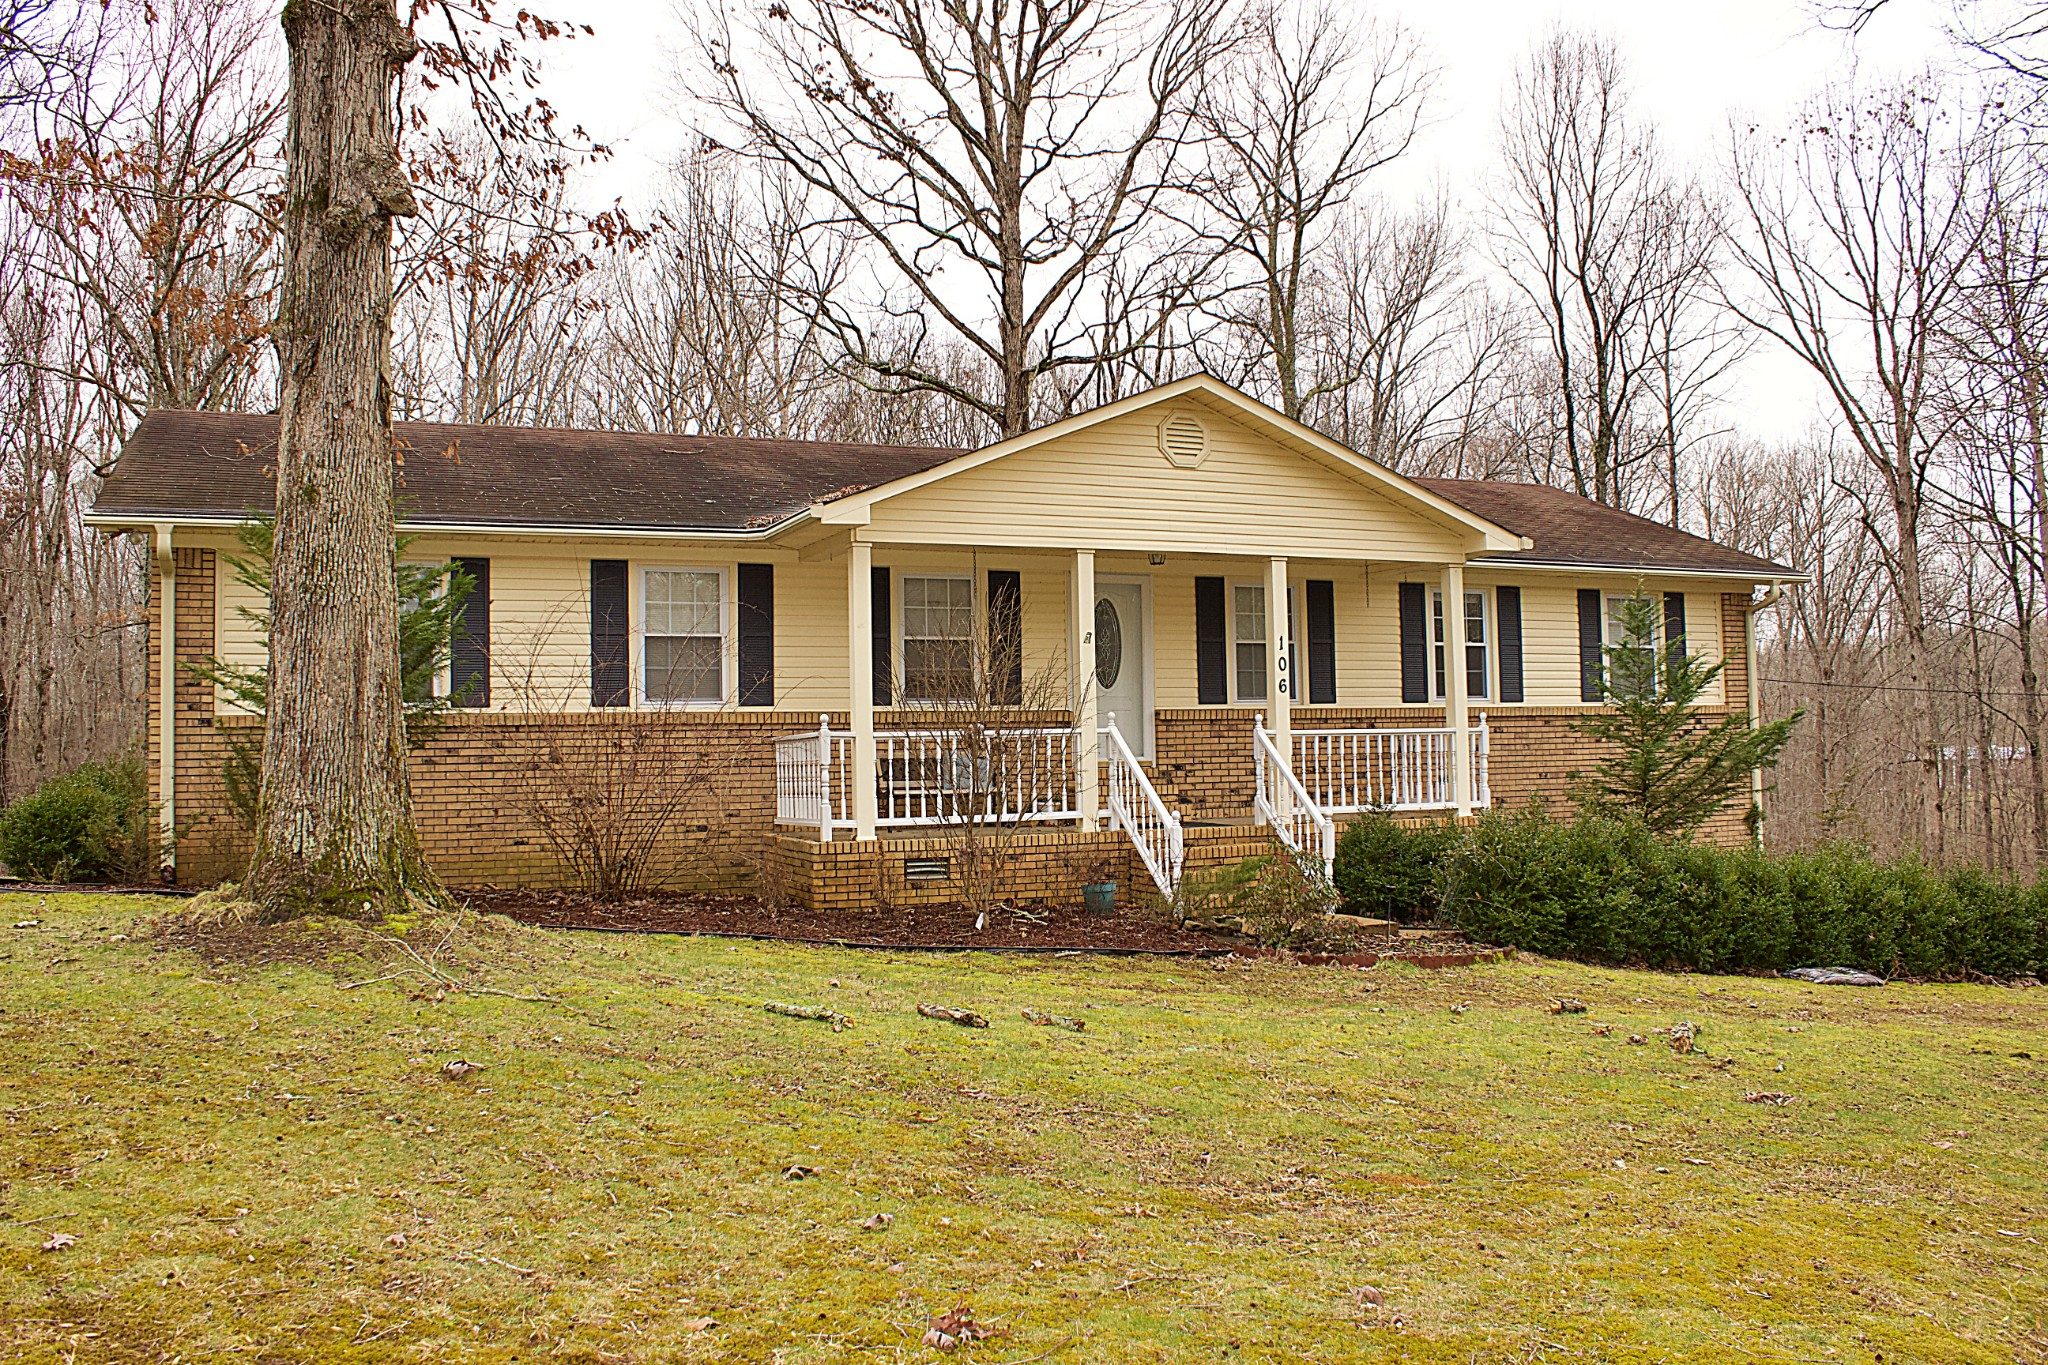 106 Rustling Oaks Dr, Waverly, TN 37185 - Waverly, TN real estate listing